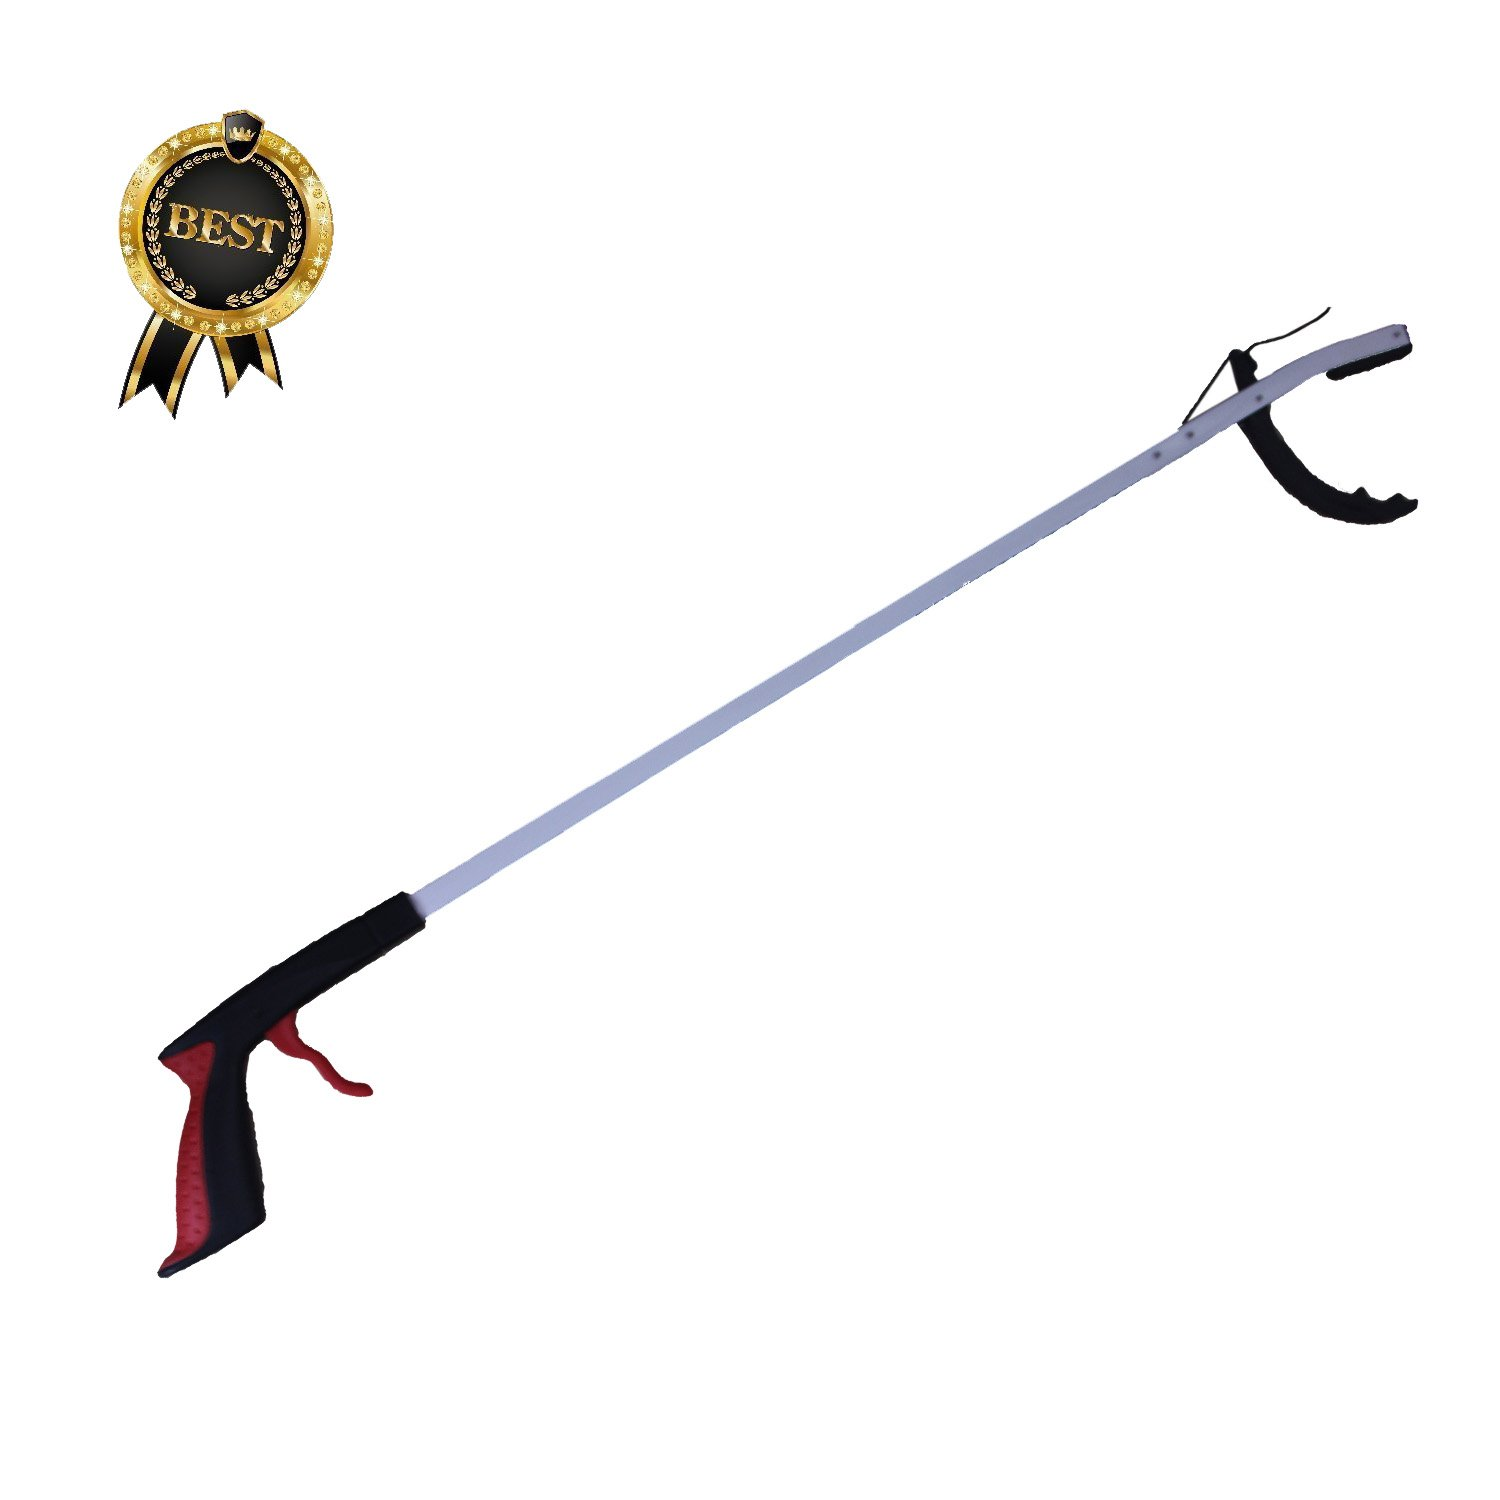 Cojoy 34'' Claw Reacher Grabber Pickup Tool , Extra Long Handy Mobility Aid ,Handy Arm Extender Makes for Trash Pick Up, Litter Picker, Garden Nabber, Disabled by COJOY